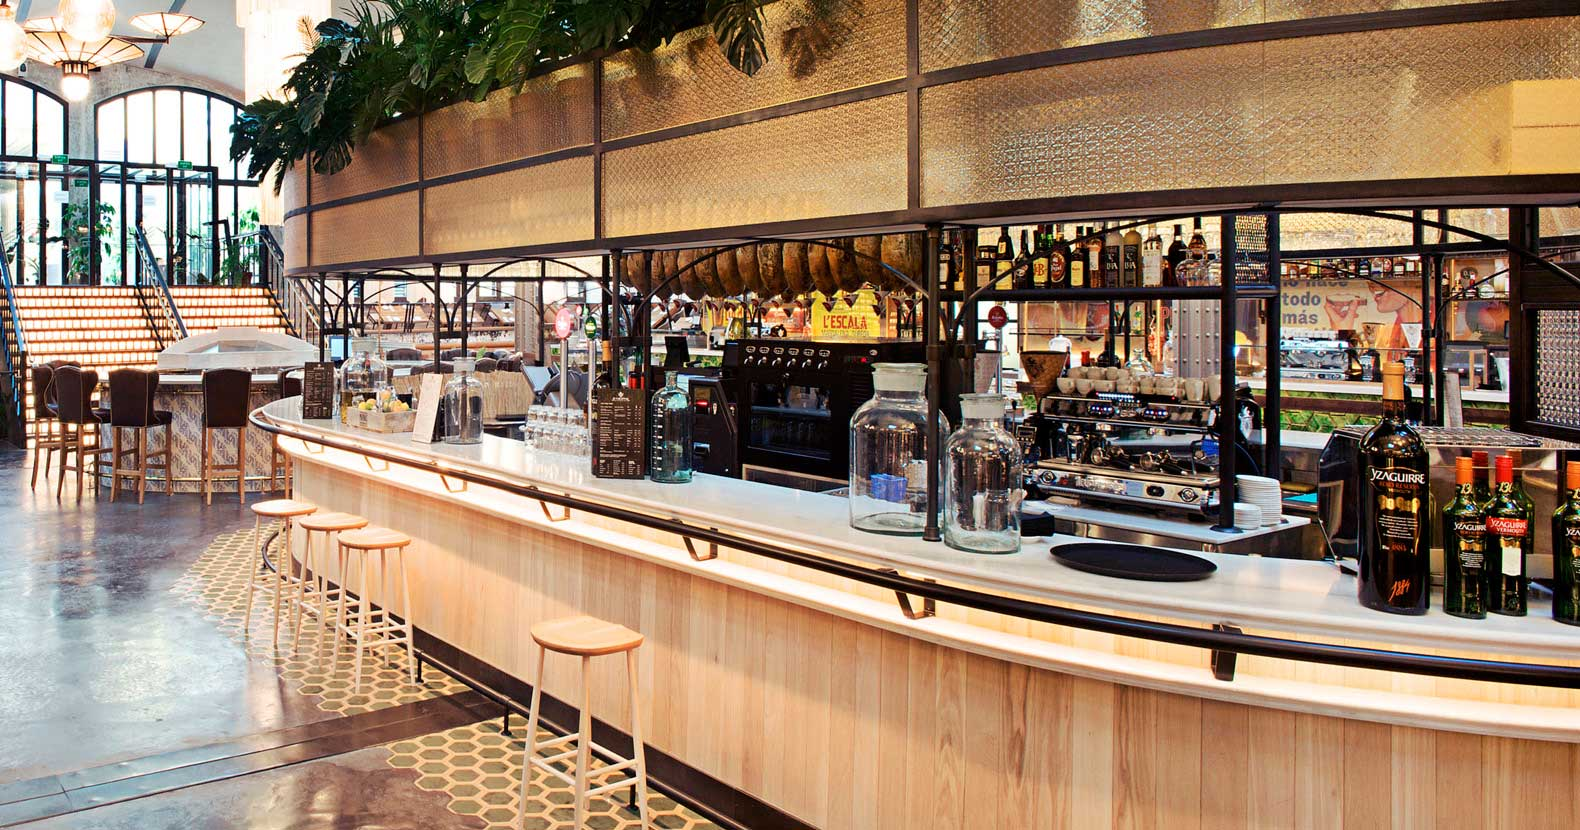 Wine and cured meats bar